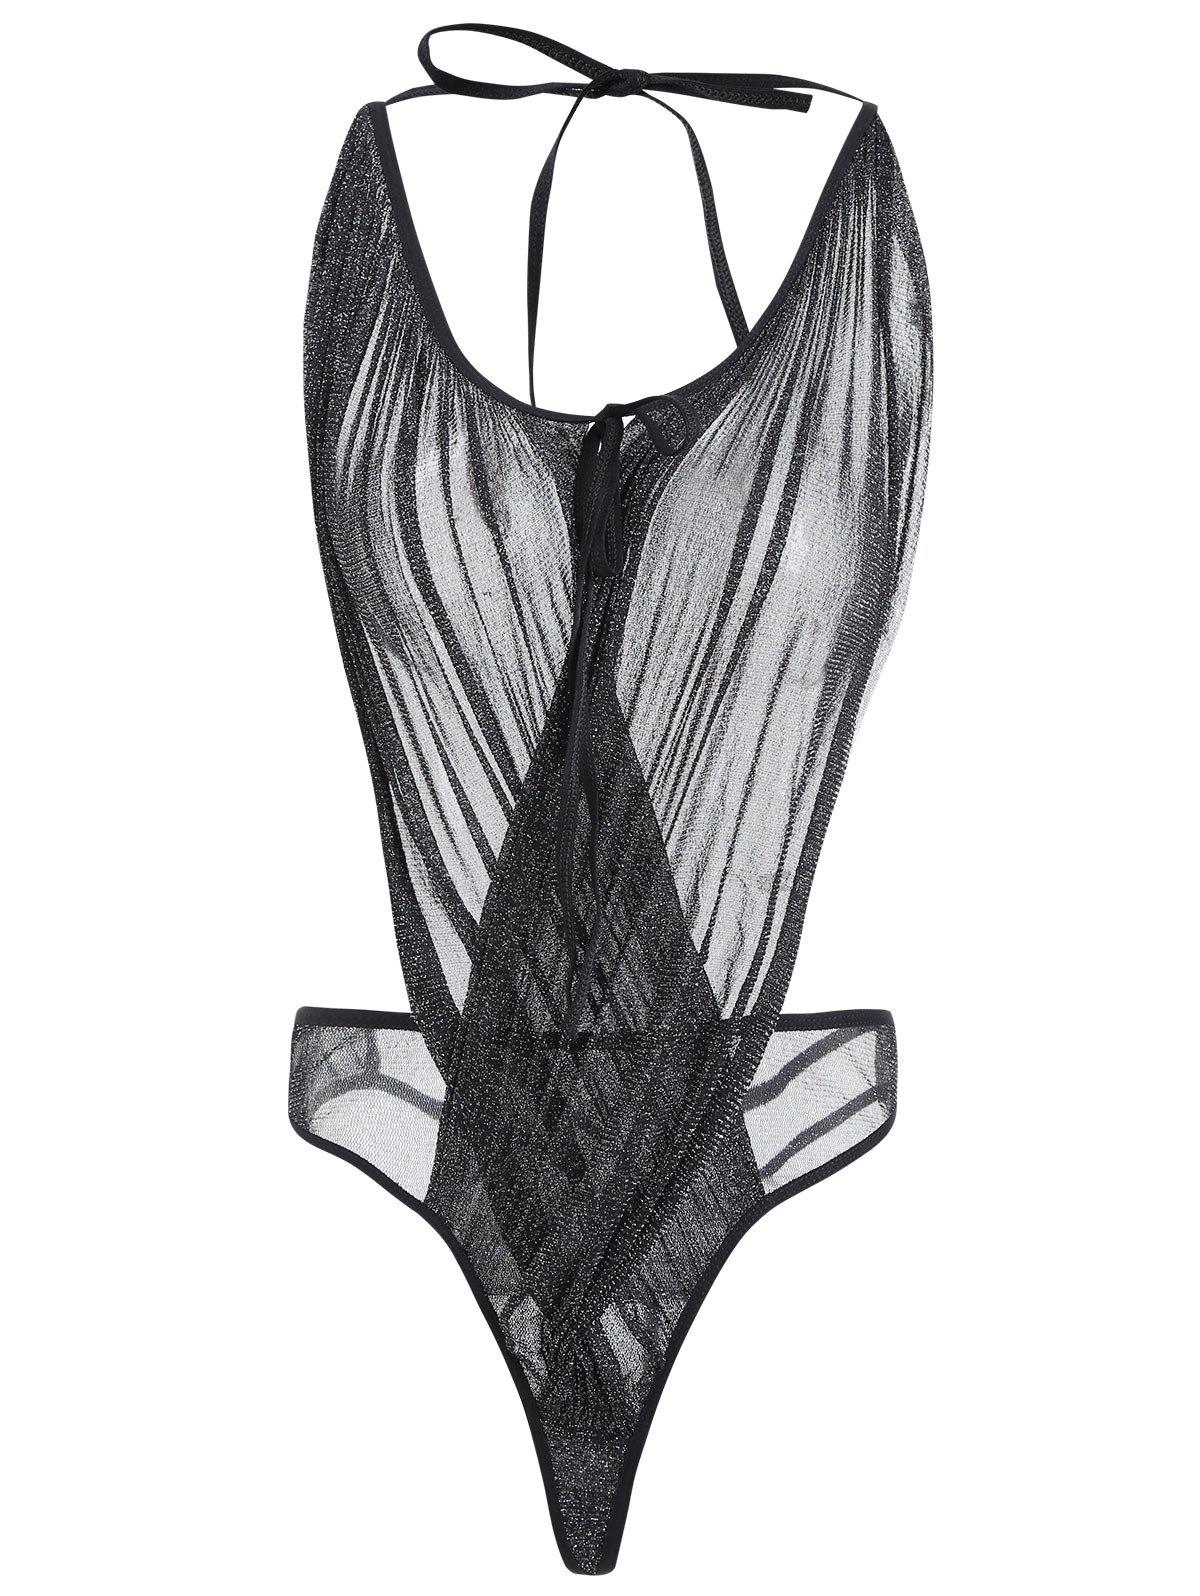 Mesh Sheer Low Cut Teddy - Noir ONE SIZE